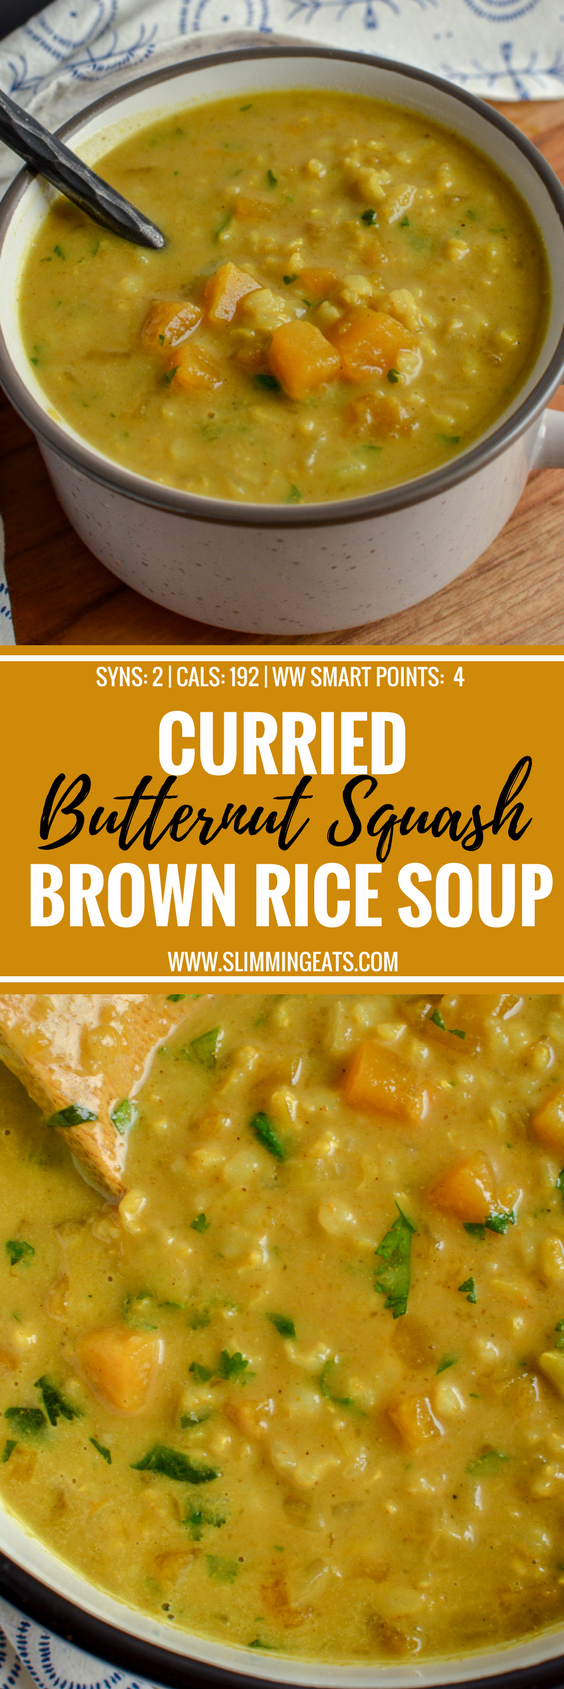 Curried Butternut Squash and Brown Rice Soup - a perfect recipe to warm yourself up on a cold winters day. Gluten Free, Dairy Free, Vegan, Instant Pot, Slimming World and Weight Watchers friendly | www.slimmingeats.com